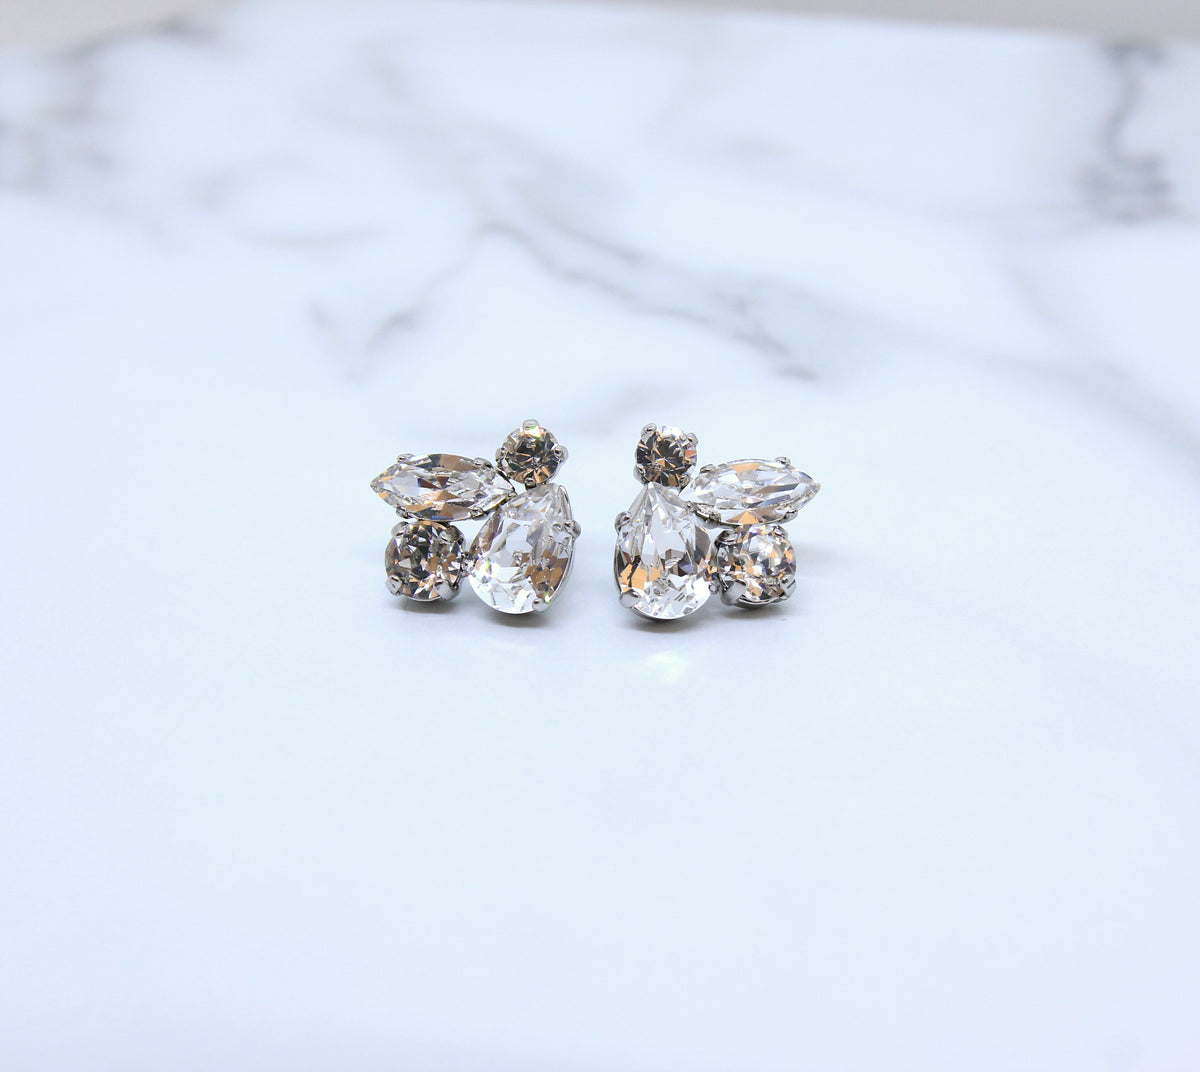 Morgan - Swarovski Cluster Earrings